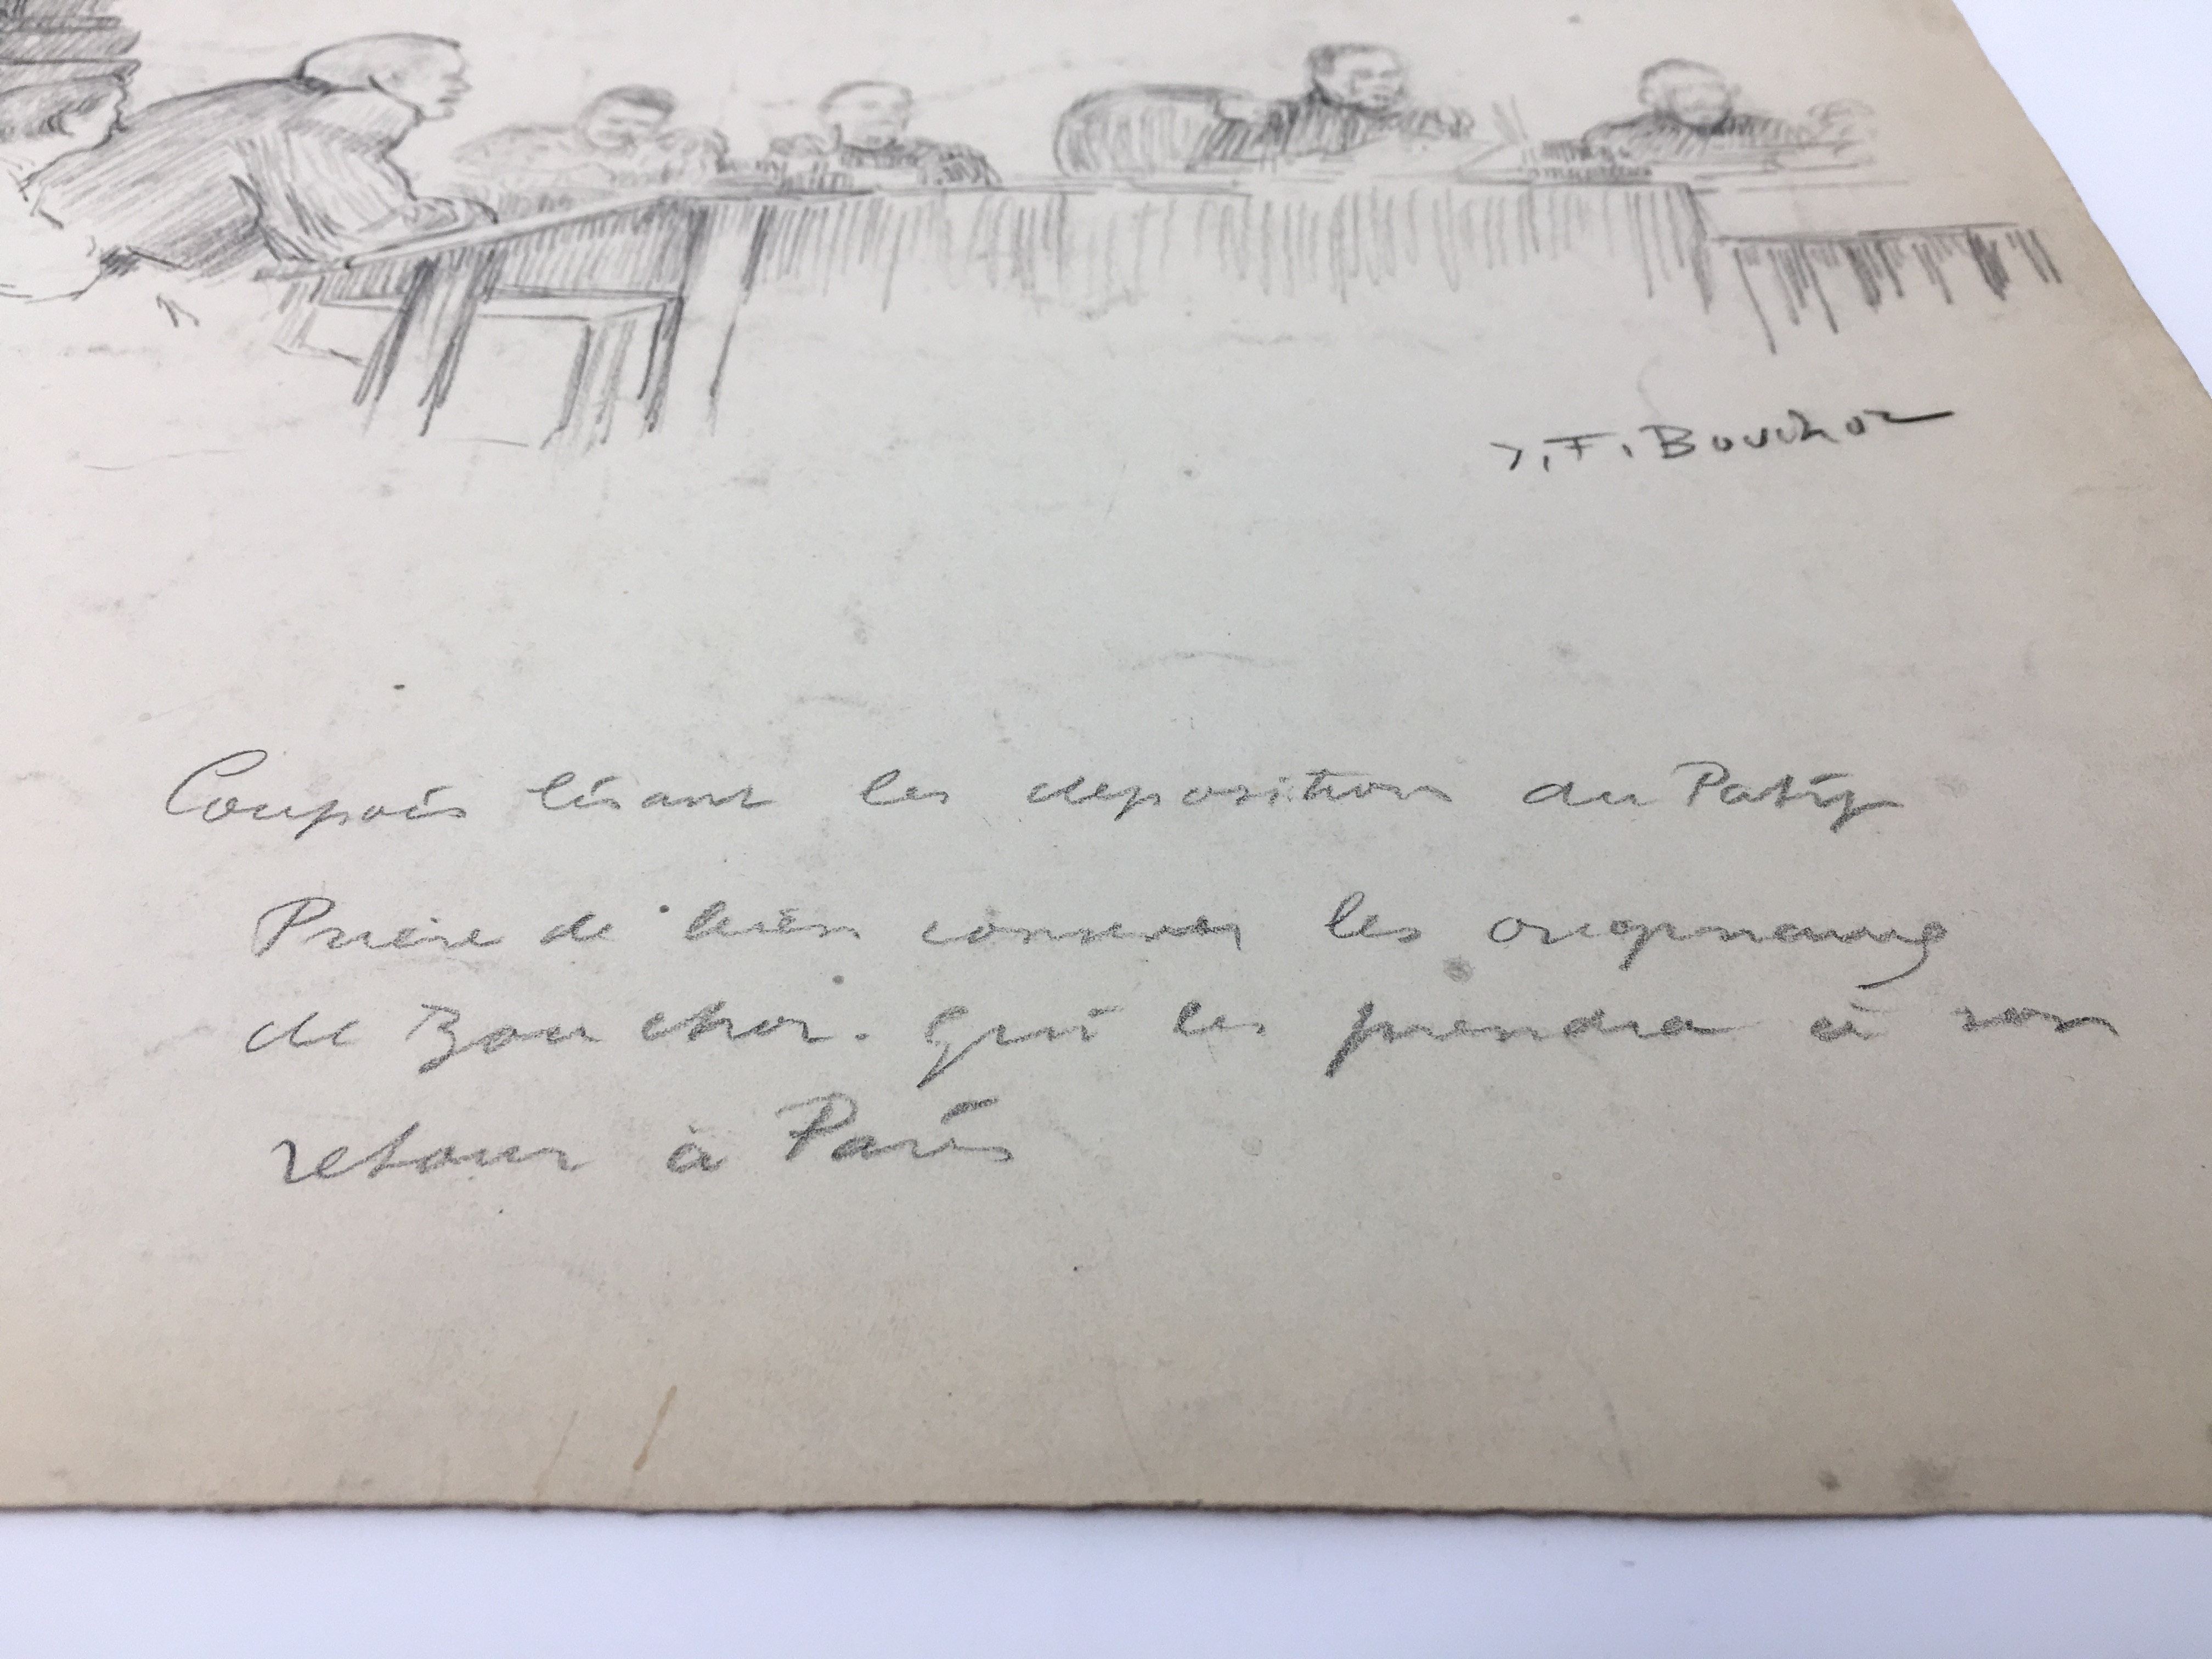 J'Accuse Newspaper, Emile Zola Quote, Signed Dreyfus Portrait, Rare Trial Drawings & Schwartzkoppen - Image 34 of 74